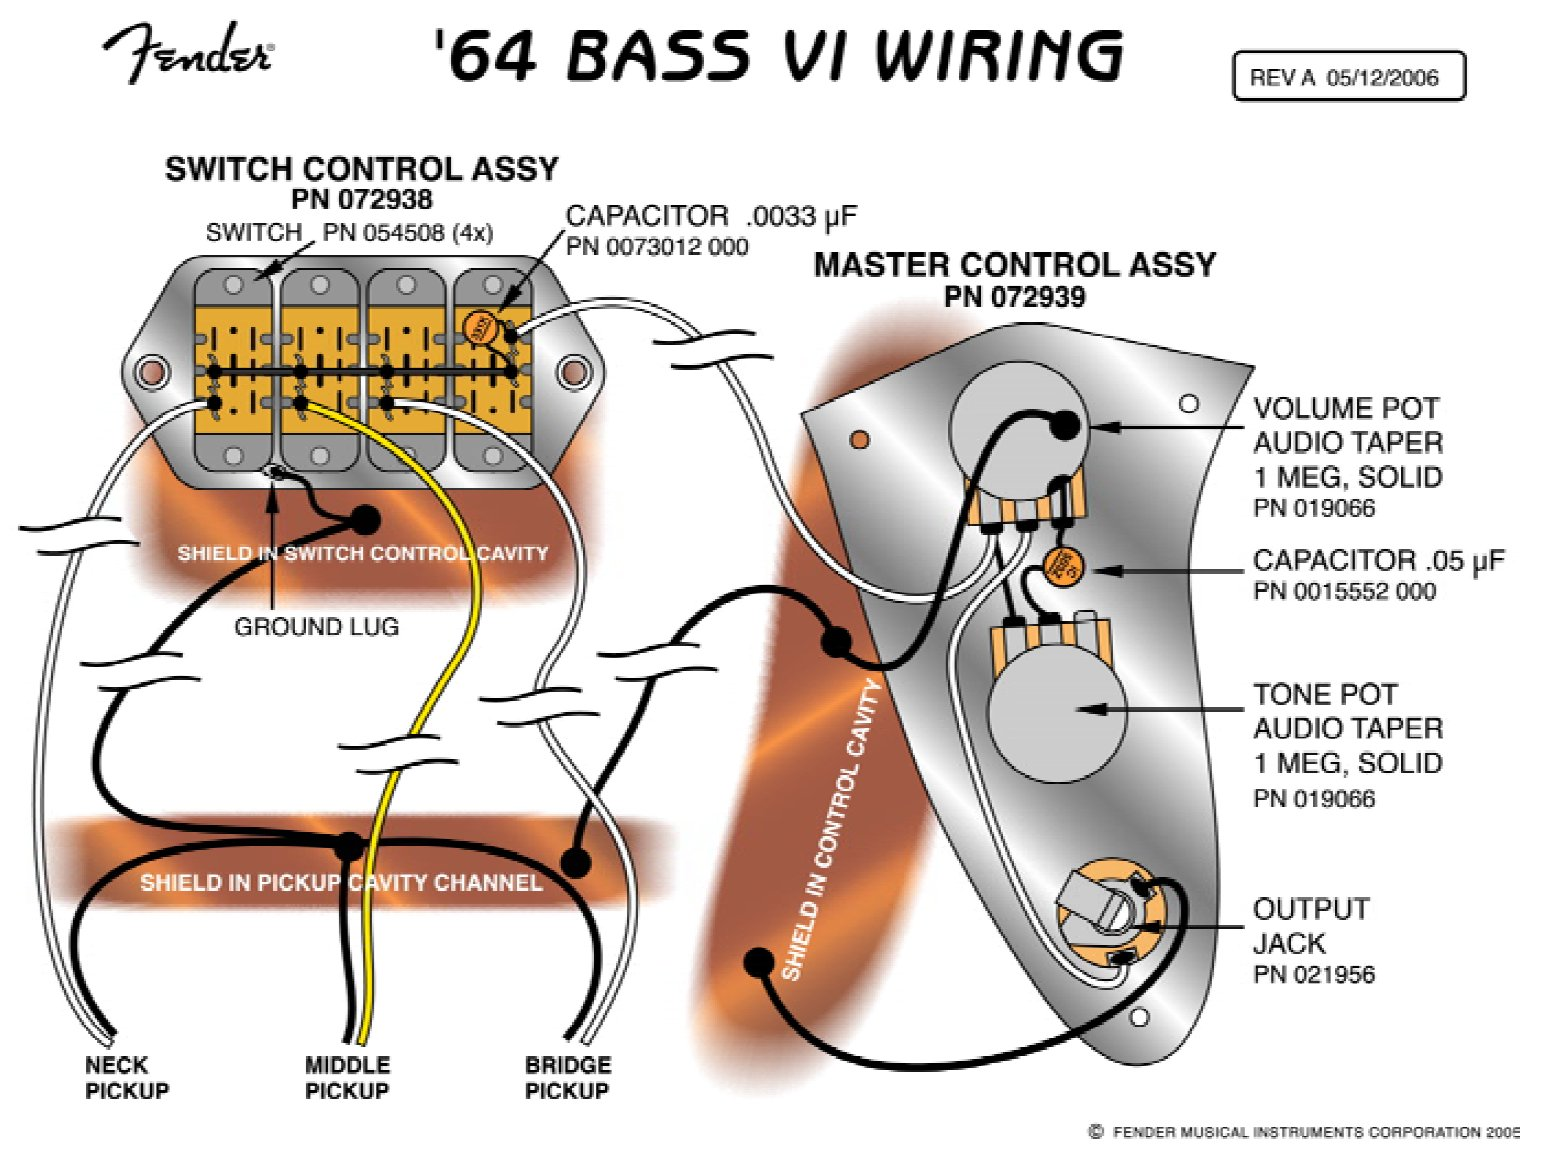 Charming jaguar bass active eq wiring diagram contemporary best fender jazz bass wiring diagram 1962 and later jazz bass swarovskicordoba Choice Image